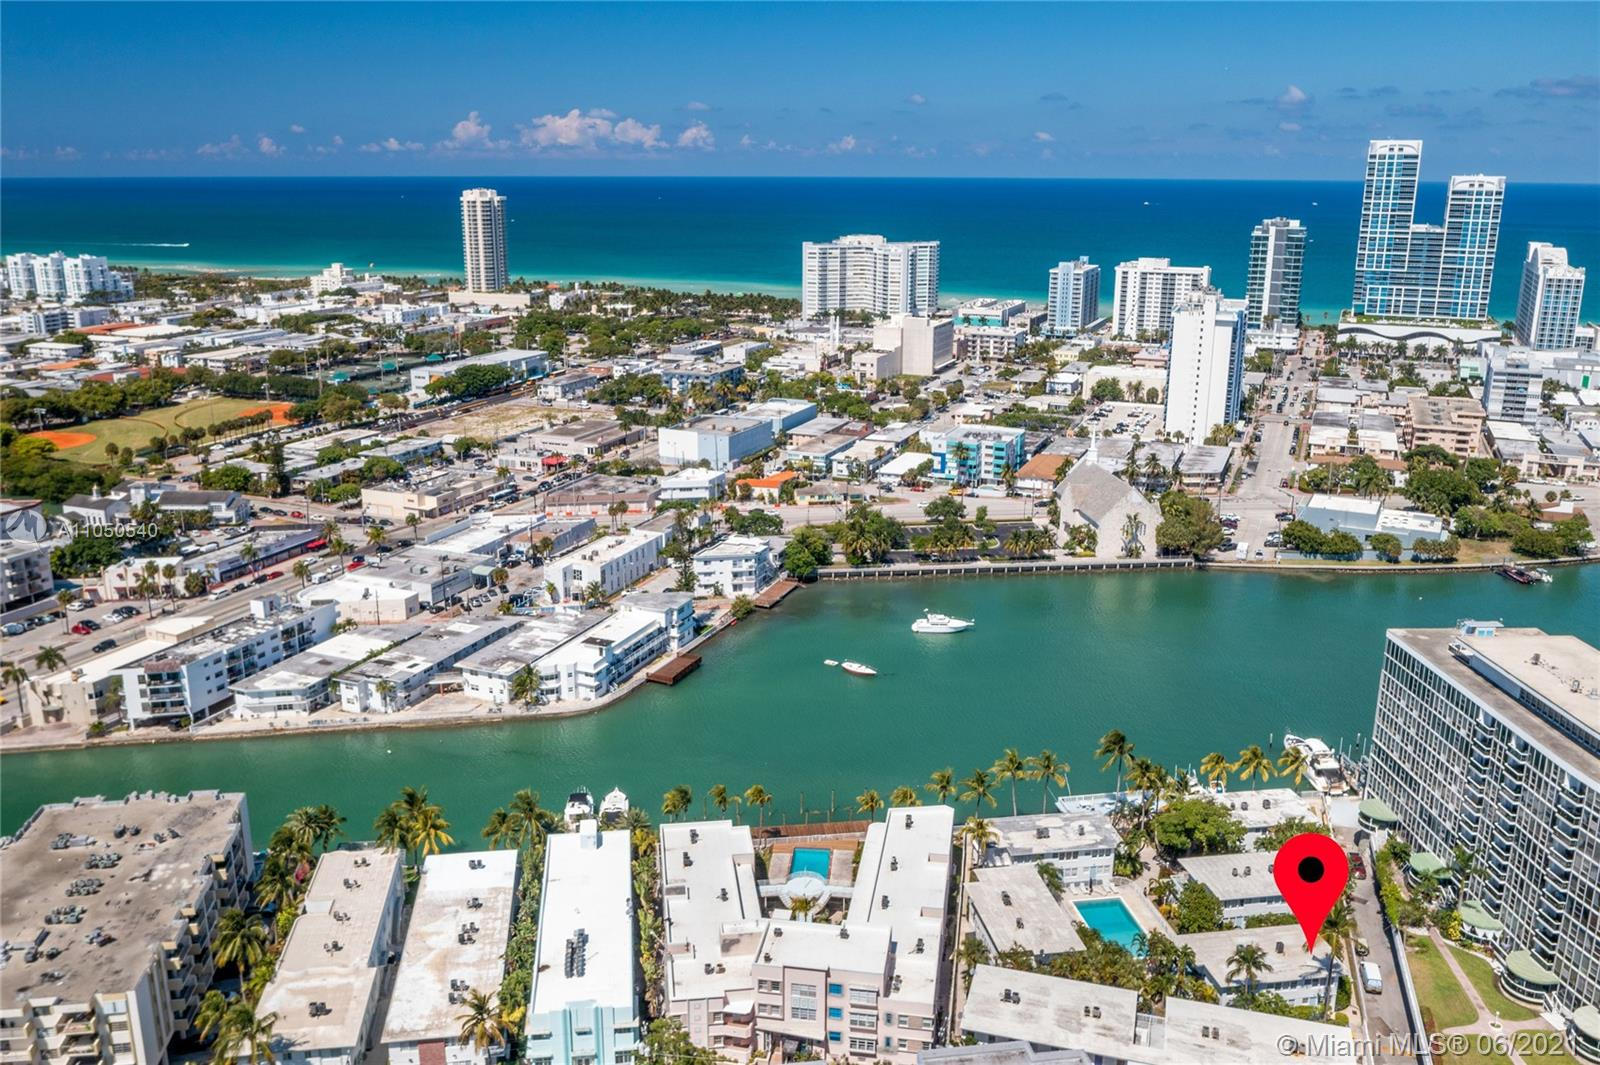 Waterfront Tropical Miami Beach with 30' Dock Available.  This two story 2 bedroom, 2 bathroom townhouse condo is nestled in a tropical boutique condominiums within walking distance to the Atlantic Ocean and Collins Avenue.  Restaurants and shops are all around this unique property.  Enjoy your over-sized second floor terrace for entertaining.  Walking in, you'll be immediately enjoy the high ceilings, and take advantage of owning a corner unit that's surrounded with windows brining in the natural light.  2 full sized bathrooms, one downstairs and the Master Bath, upstairs wall to wall windows and a walk-in closet.  Saving the BEST for last is the value. $300k